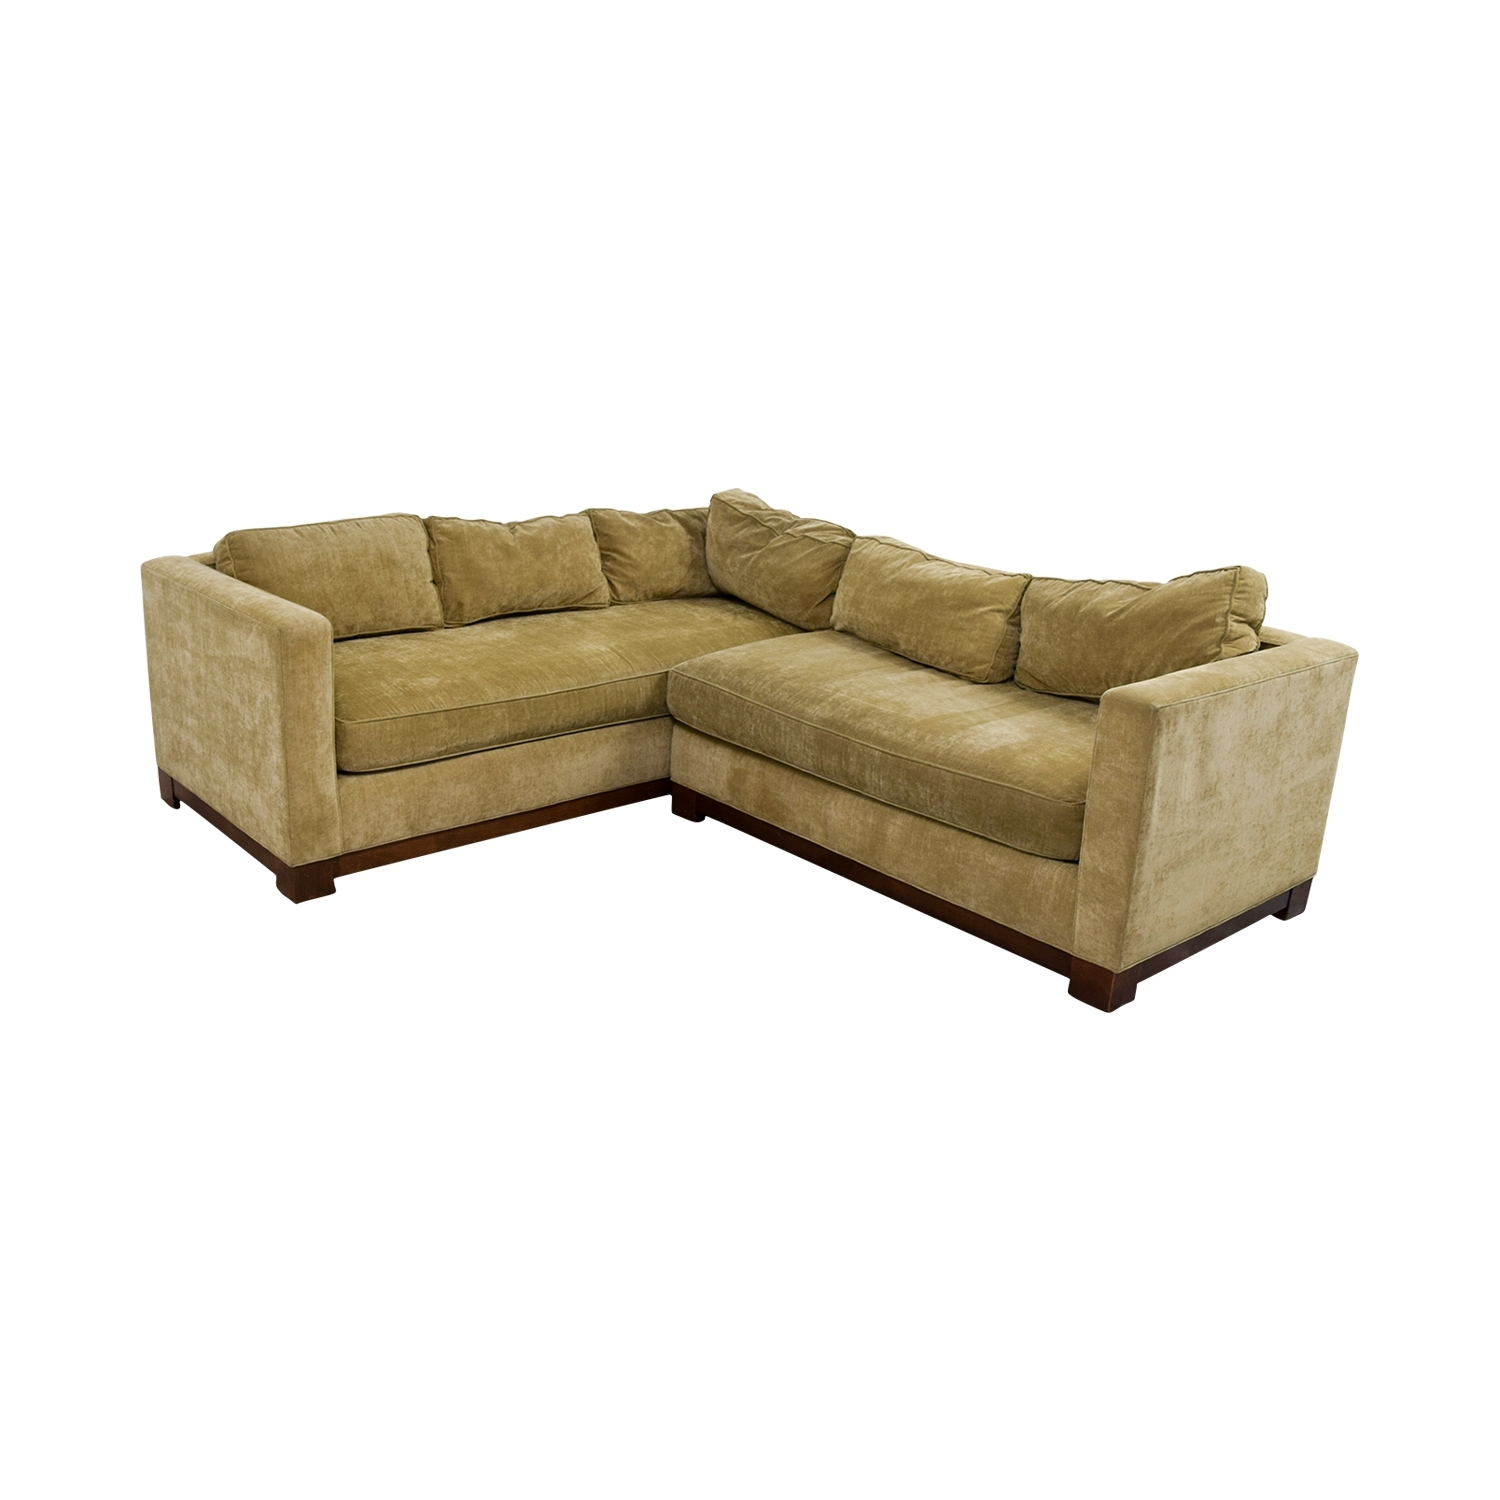 84% Off - Mitchell Gold + Bob Williams Mitchell Gold + Bob Williams in Gold Sectional Sofas